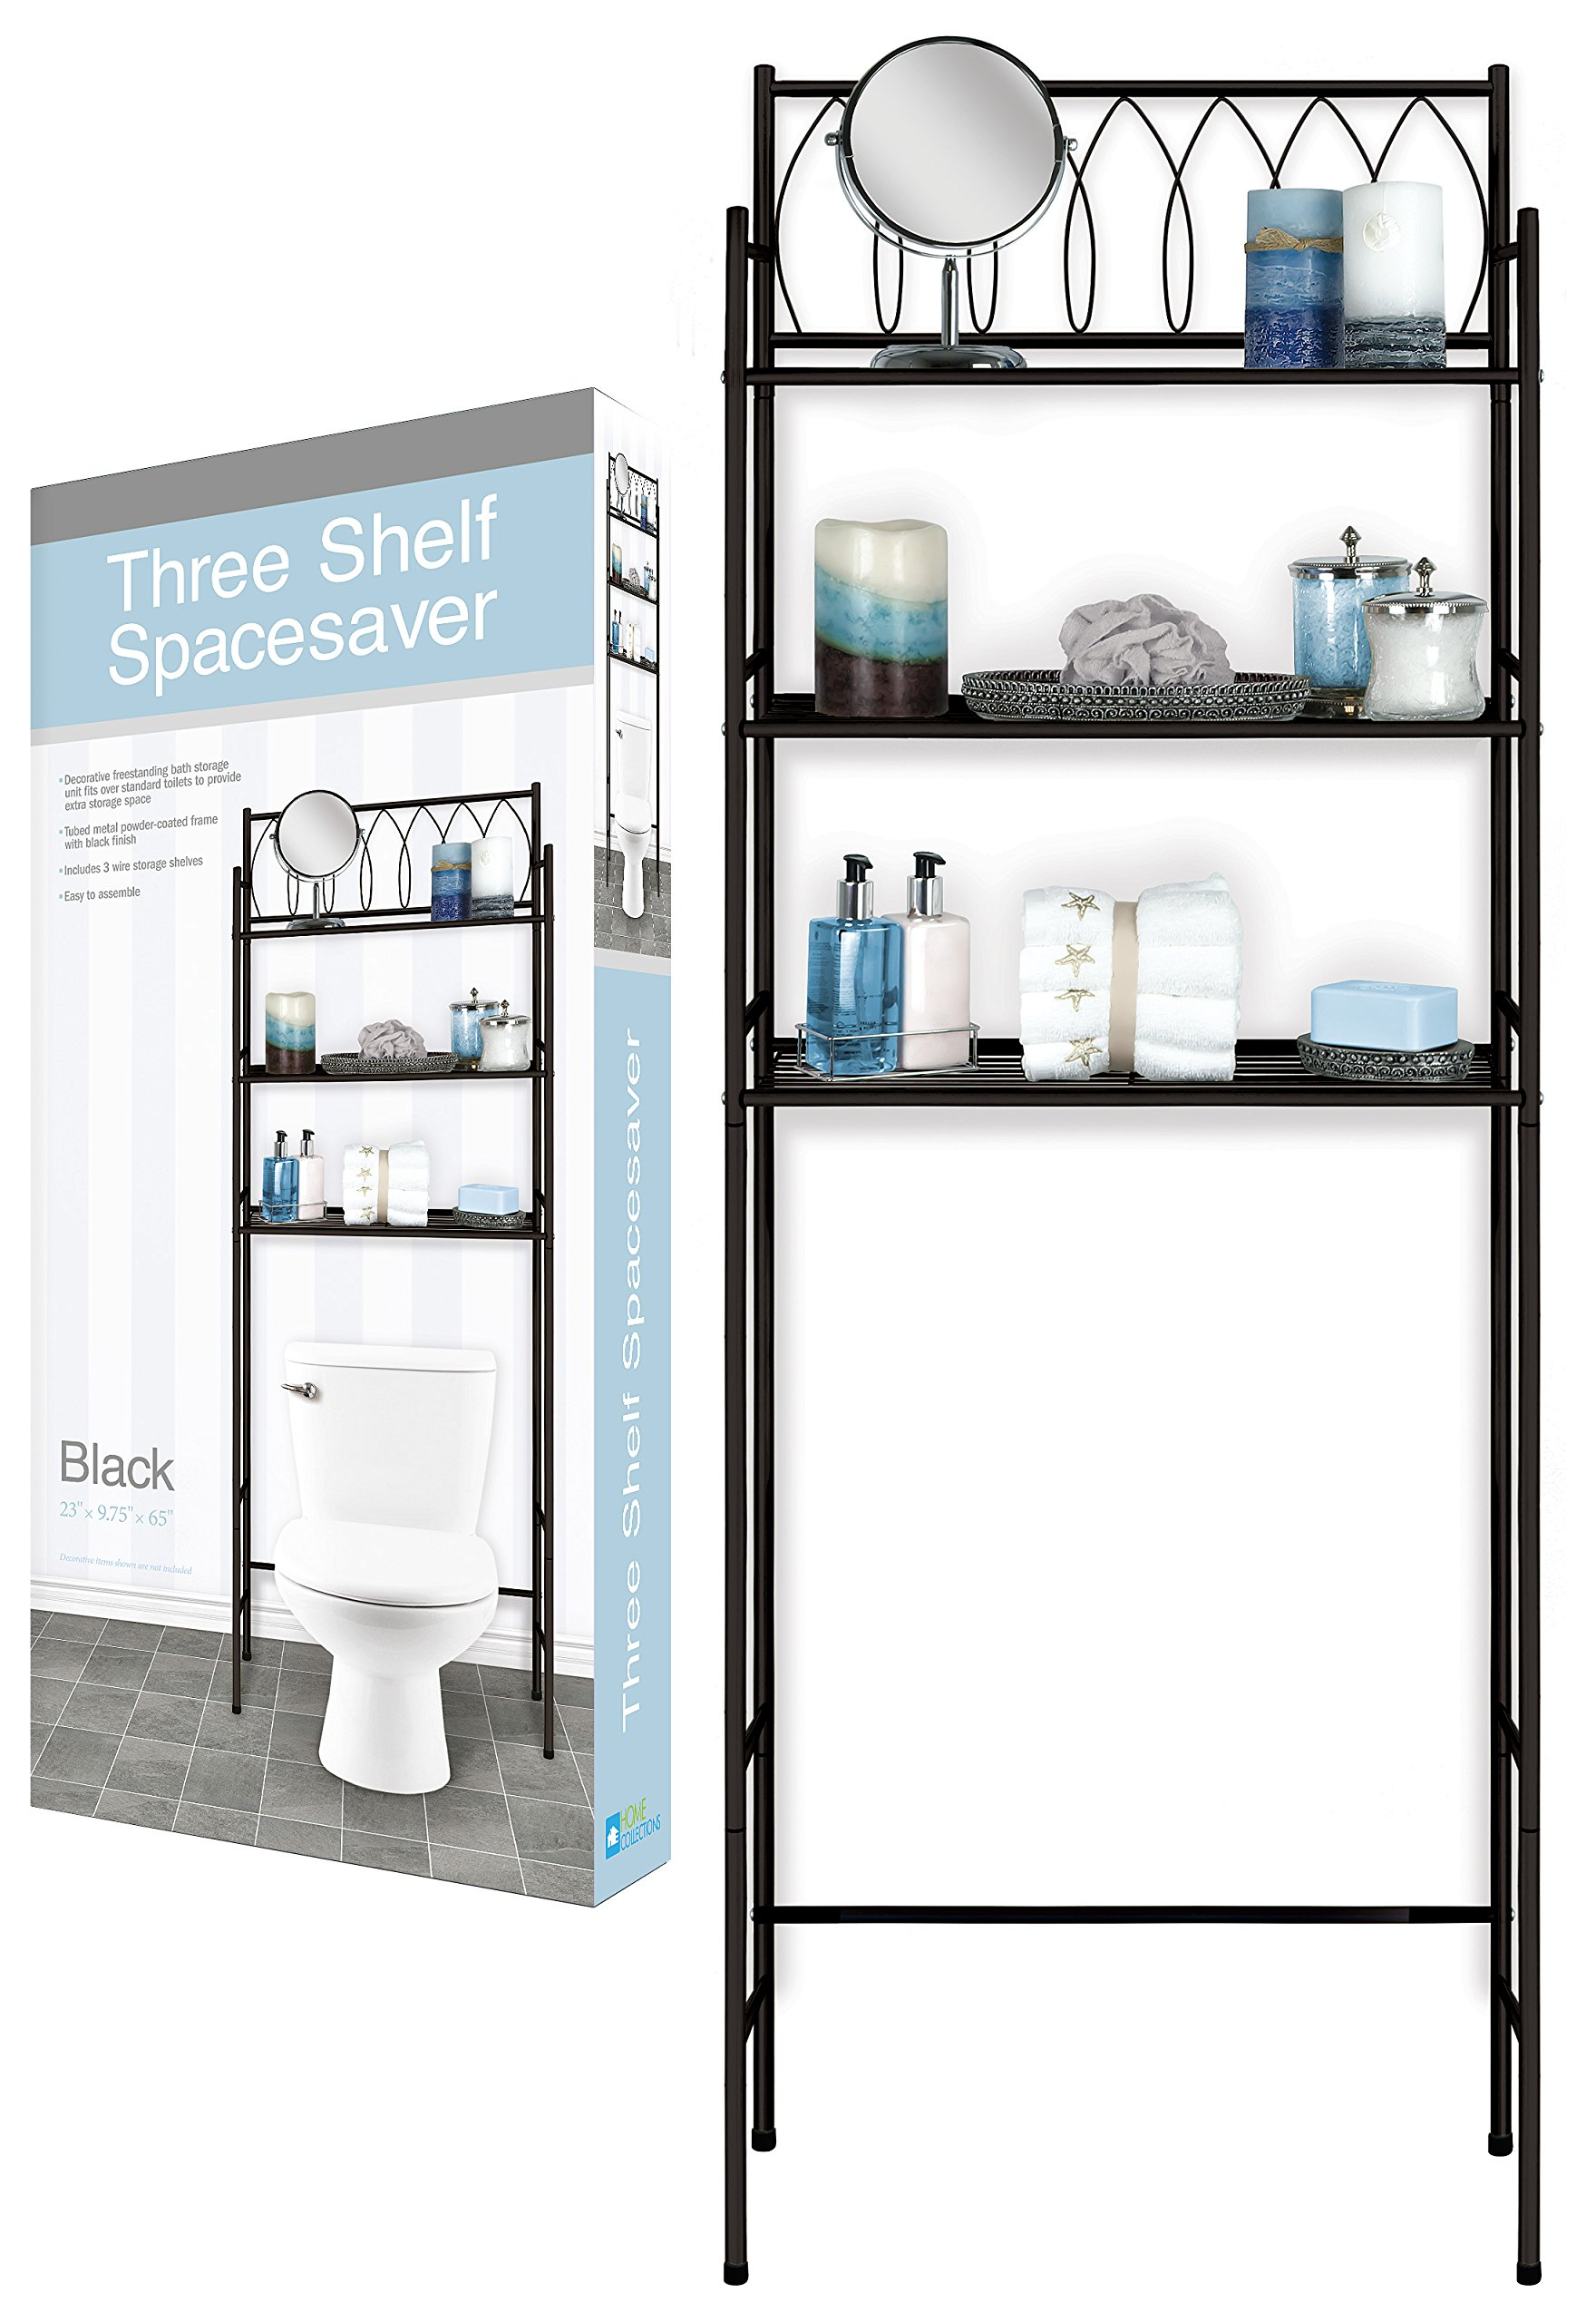 DINY Home Collections 3 Shelf Over The Toilet Spacesaver Easy to Assemble (Black) 65'' Tall